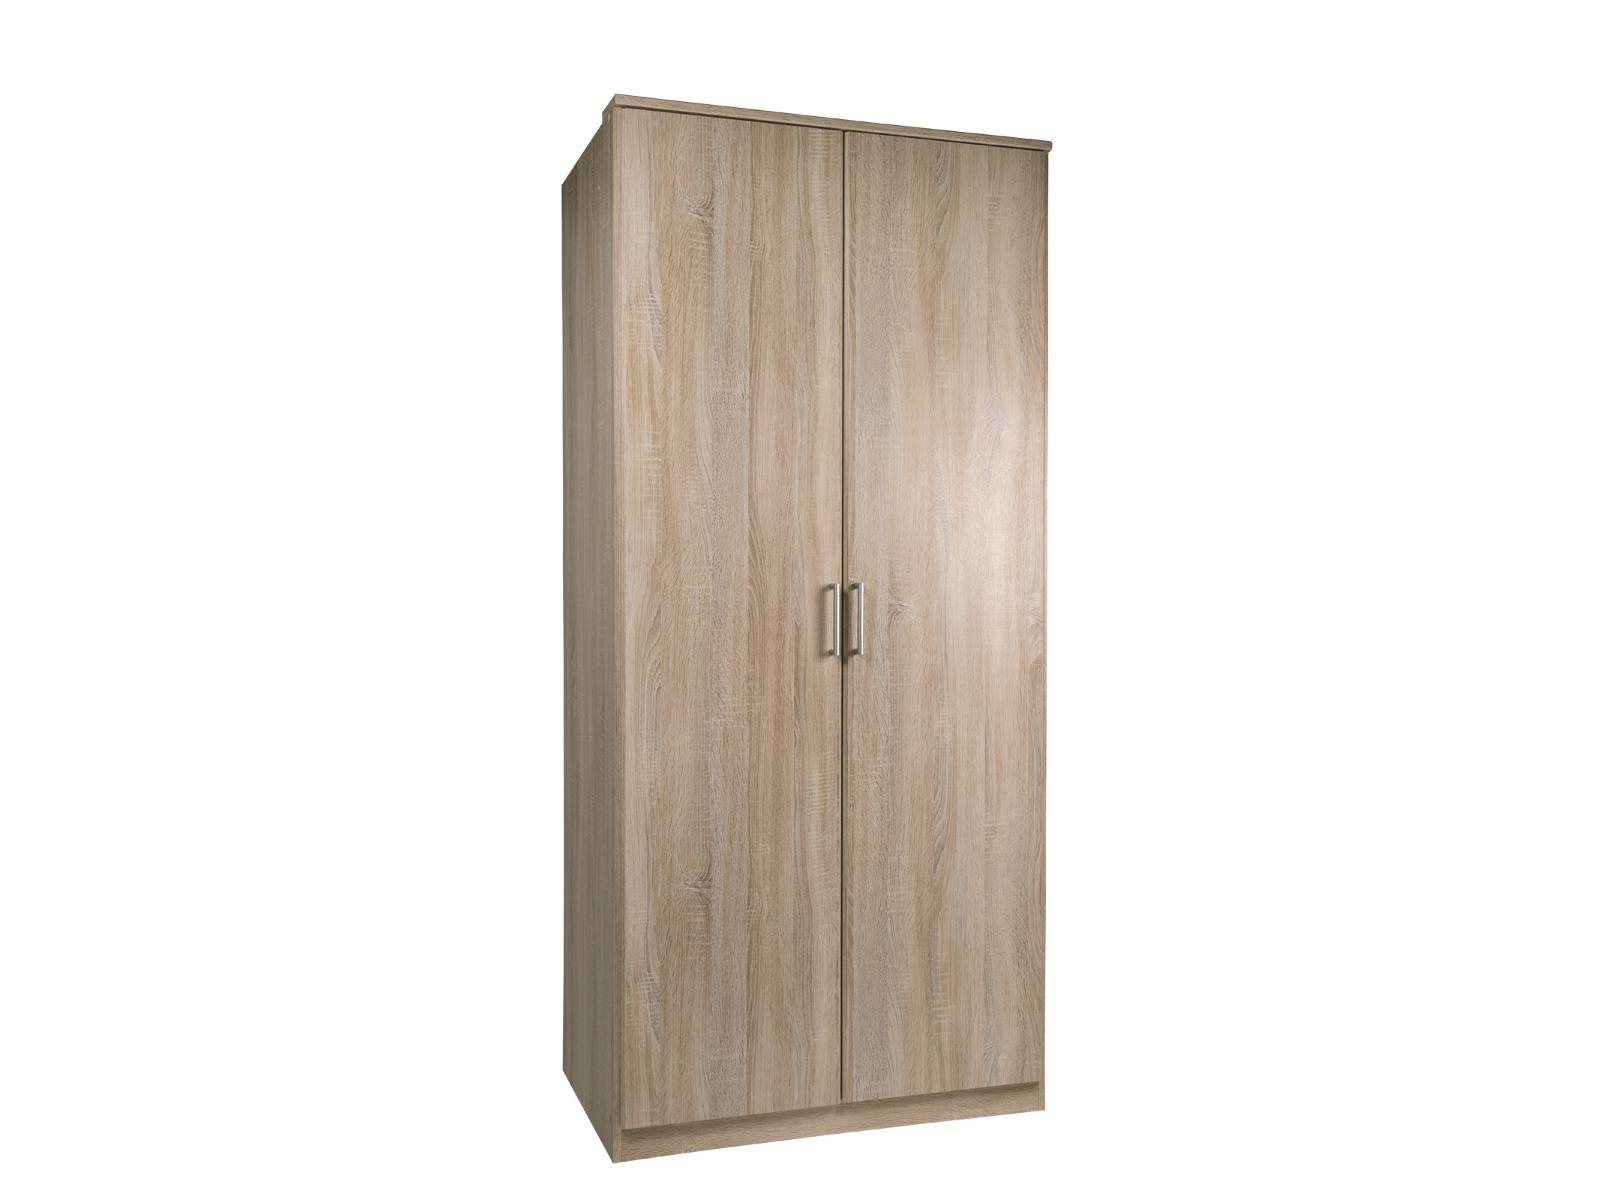 Cheap Wardrobes | Bedroom Furniture For Sale | Double Wardrobe pertaining to Cheap Black Gloss Wardrobes (Image 4 of 15)